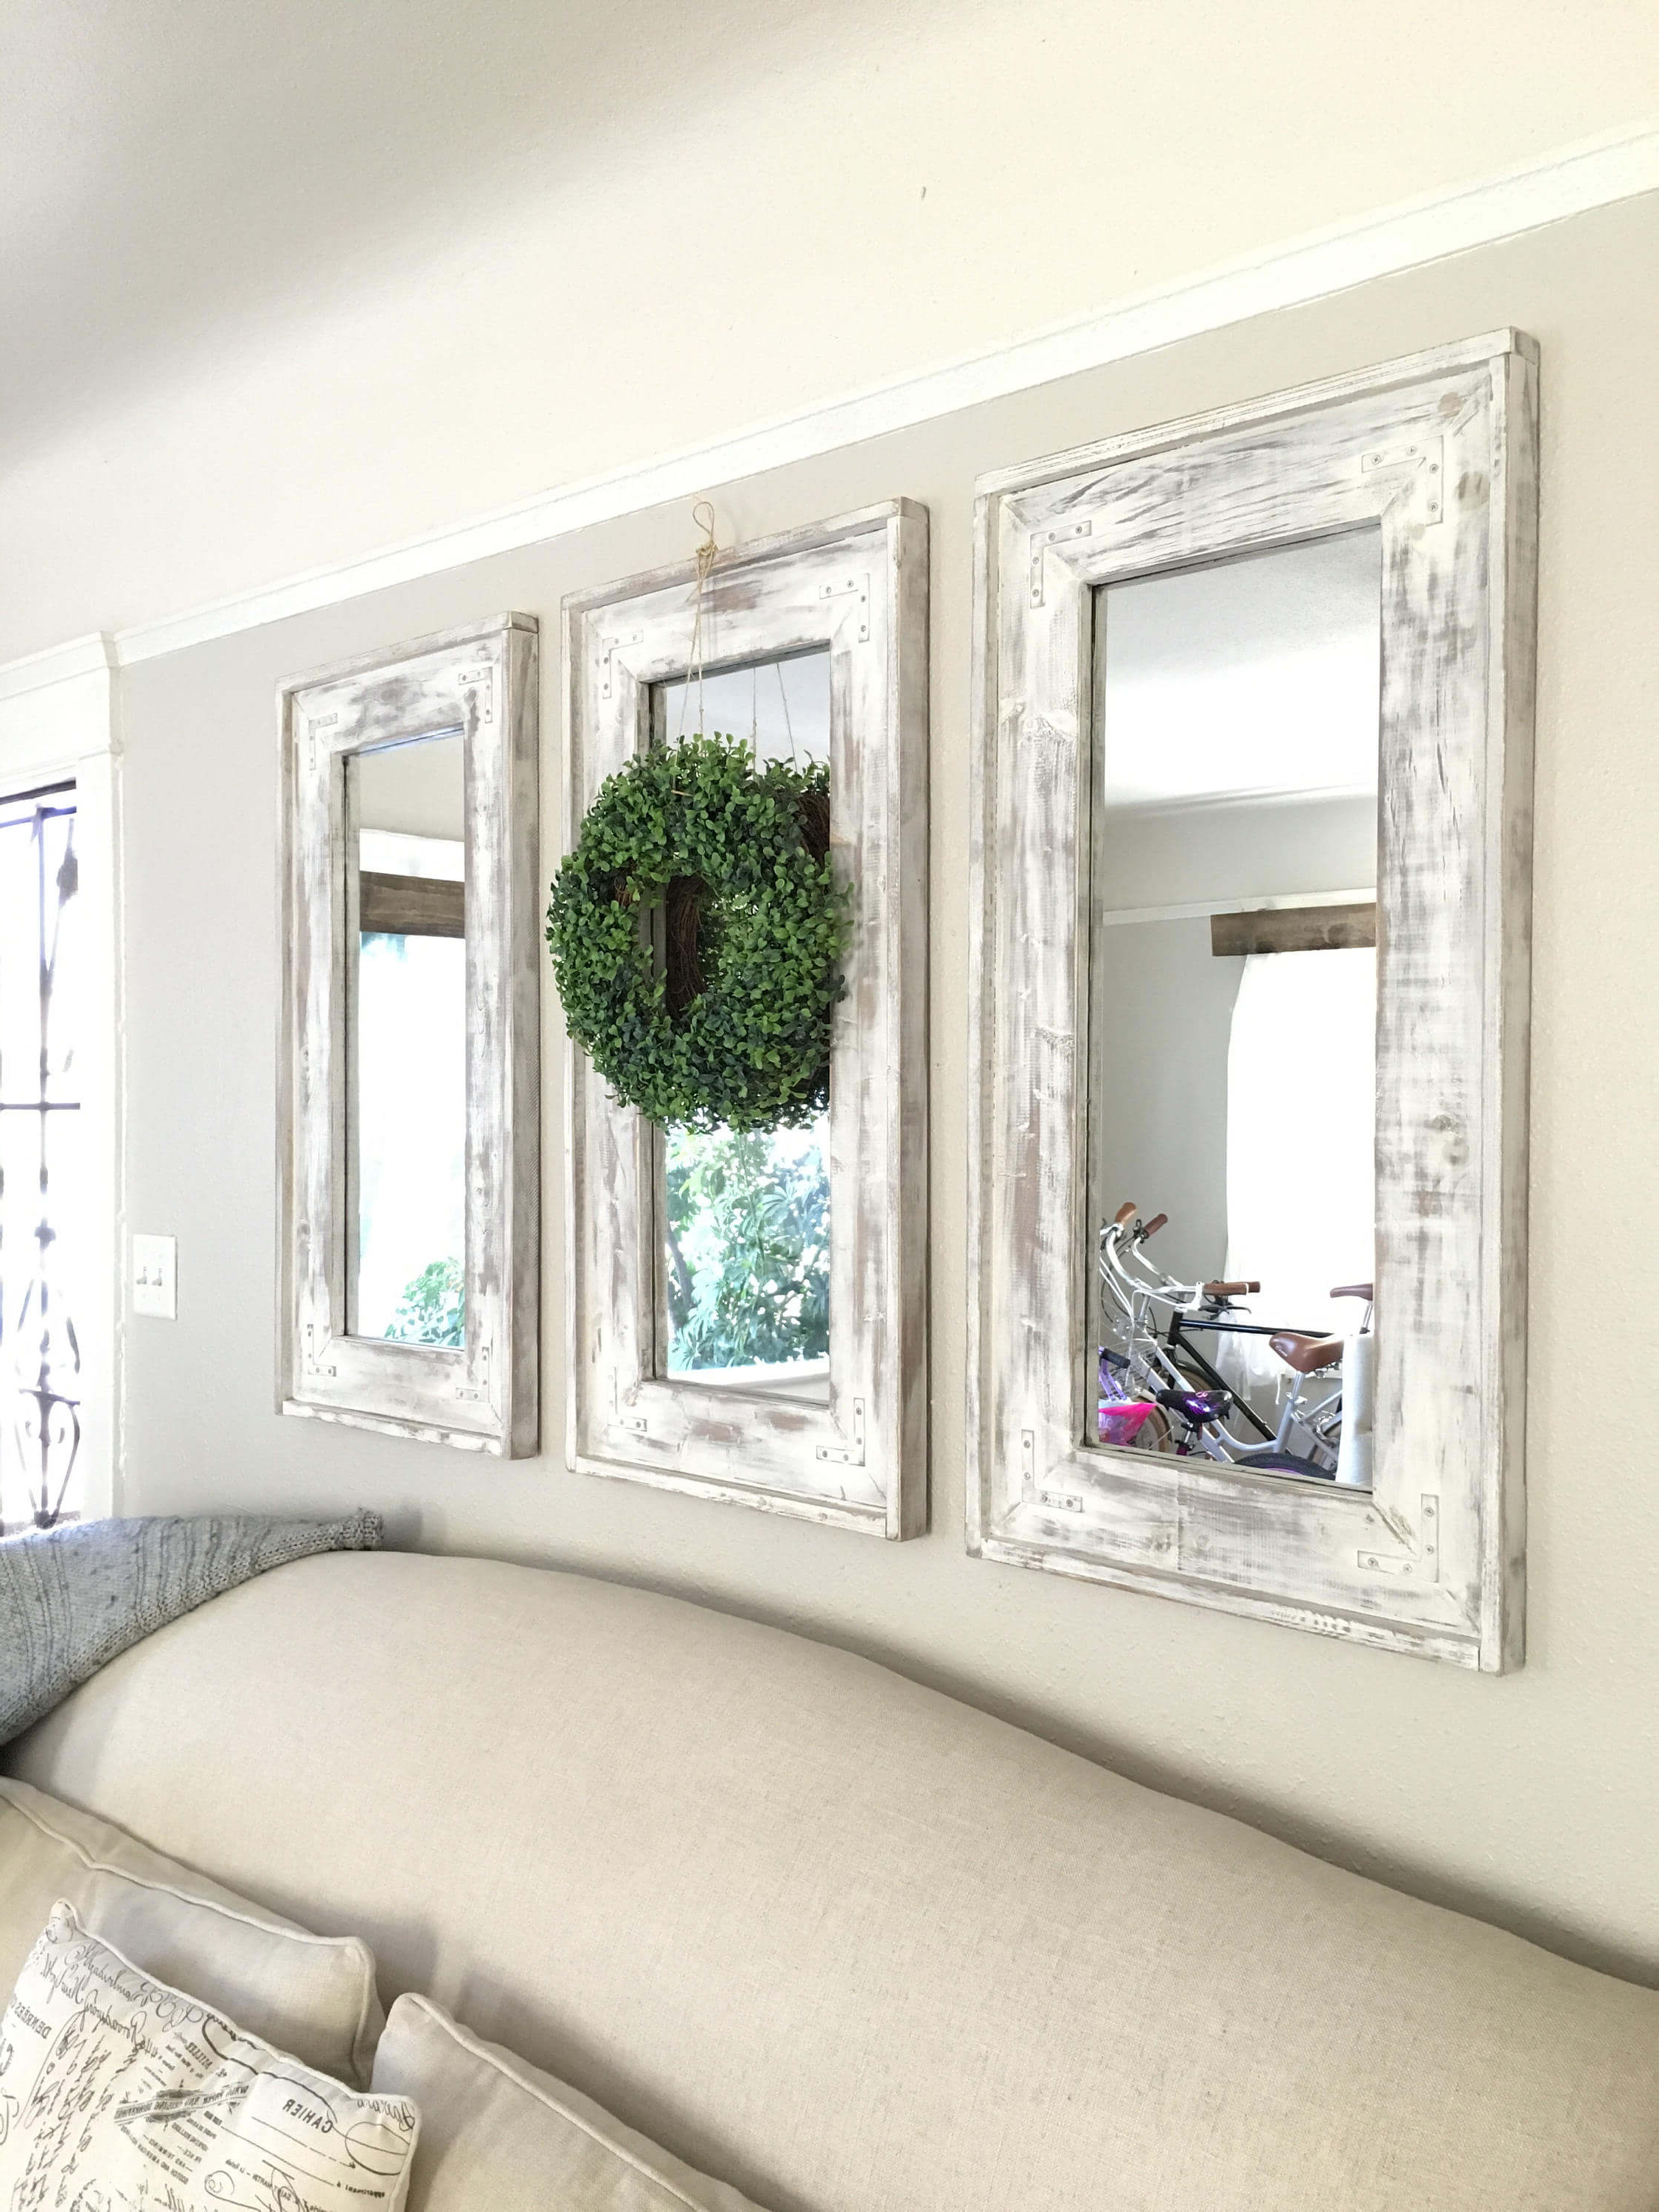 Large Best Farm Enchanting Ideas Design Wall Mirrors Couples Diy Within Latest Large Rustic Wall Mirrors (View 15 of 20)